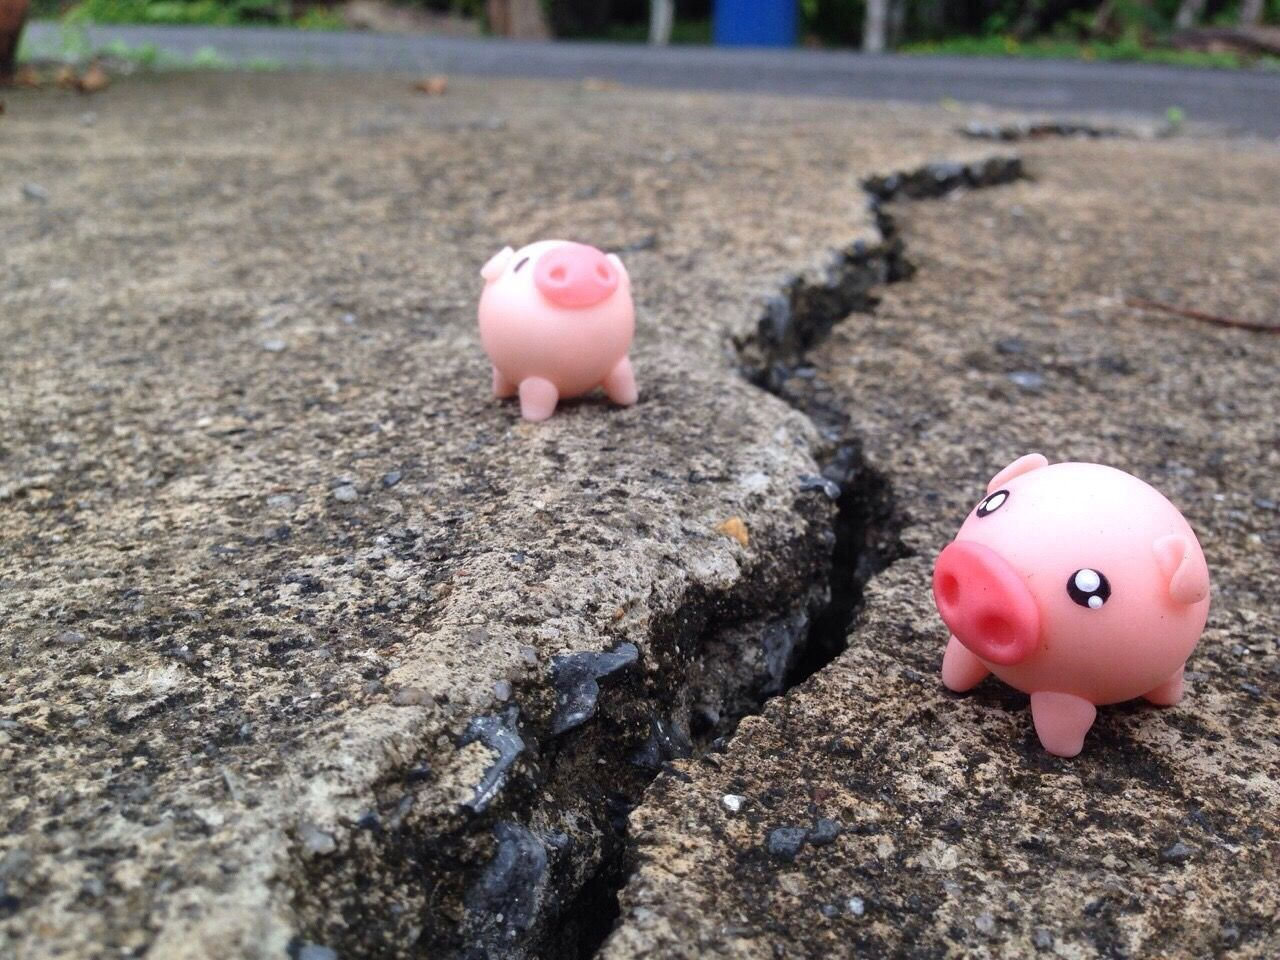 Separation Far Barrier Piggy Piggy Bank Piggybank Piggy♥ Eathquake Focus On Foreground Childhood Piggy Bank Close-up No People Pink Color Eggshell Outdoors Day Savings Millennial Pink